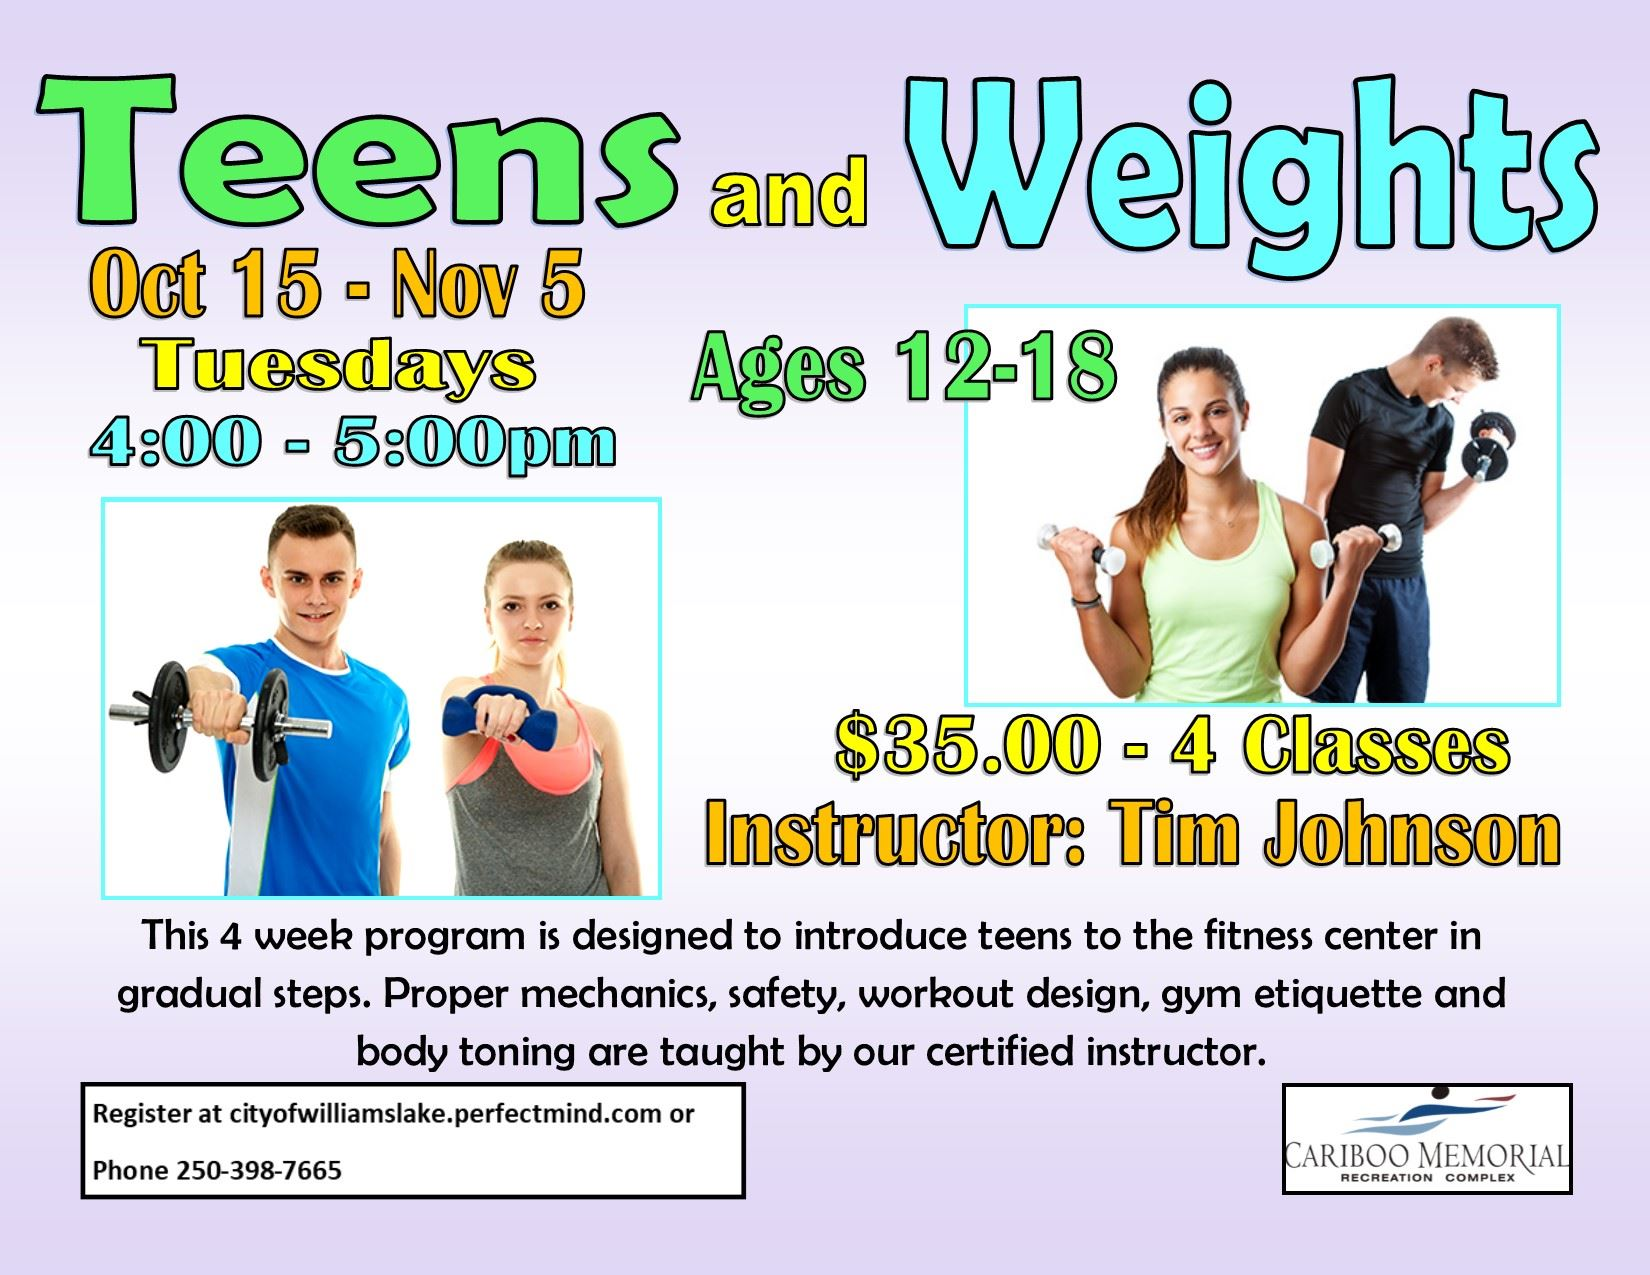 Teens and Weights Oct 15